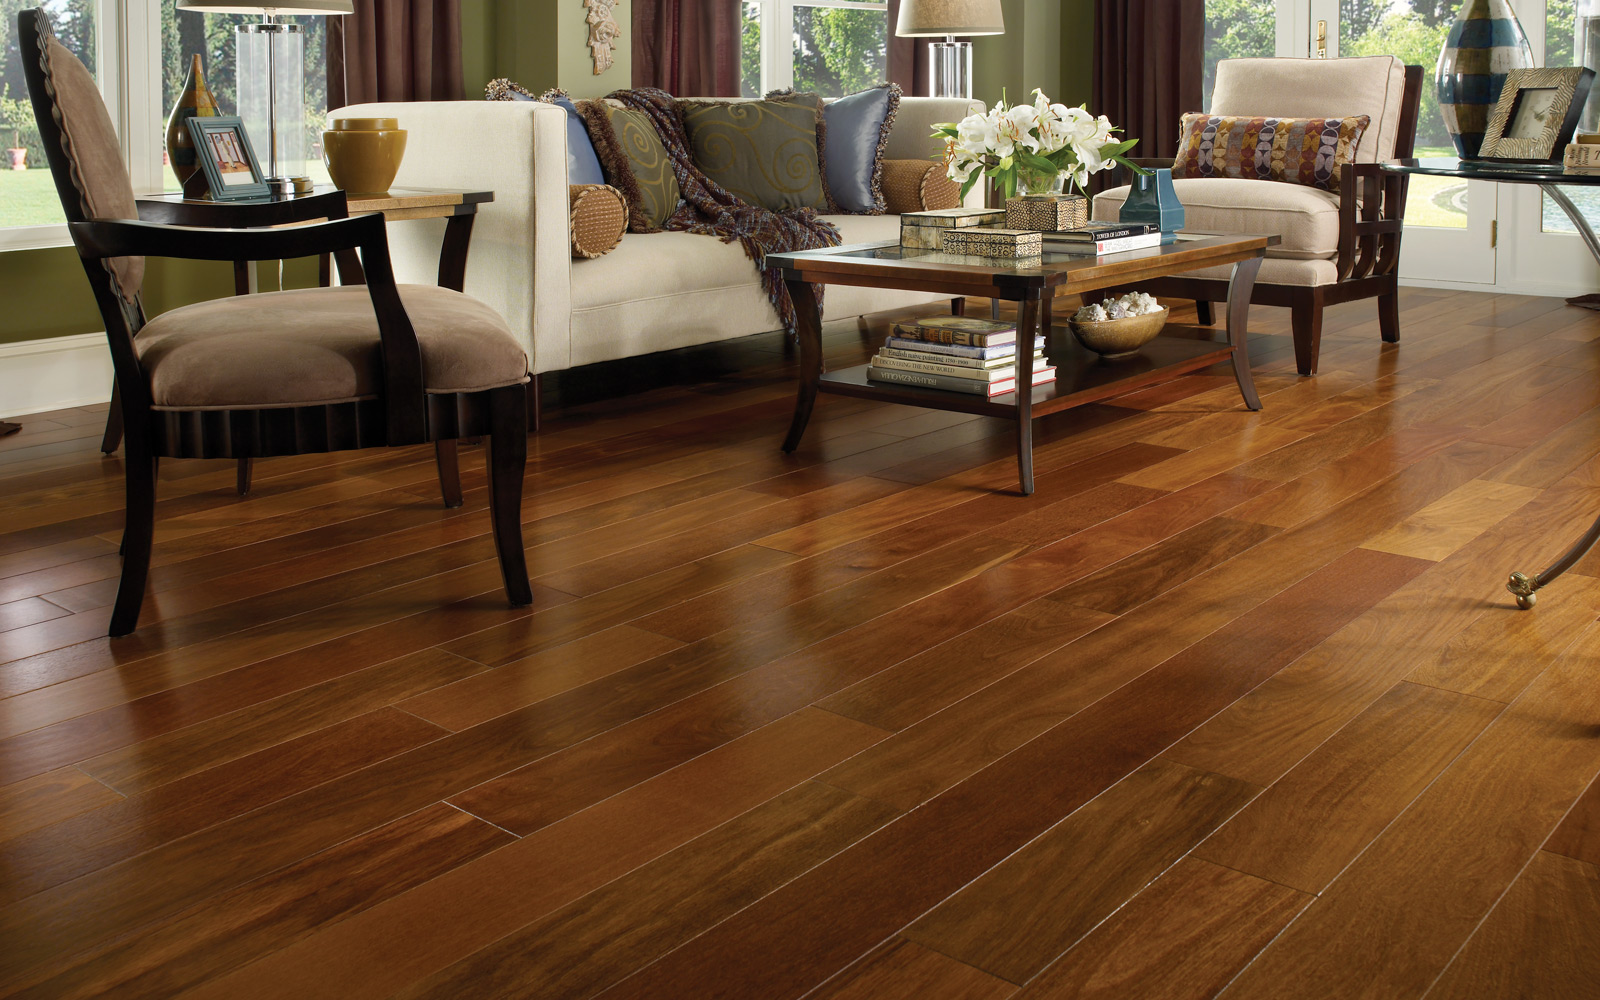 Cost Of Laminate Flooring For Living Room